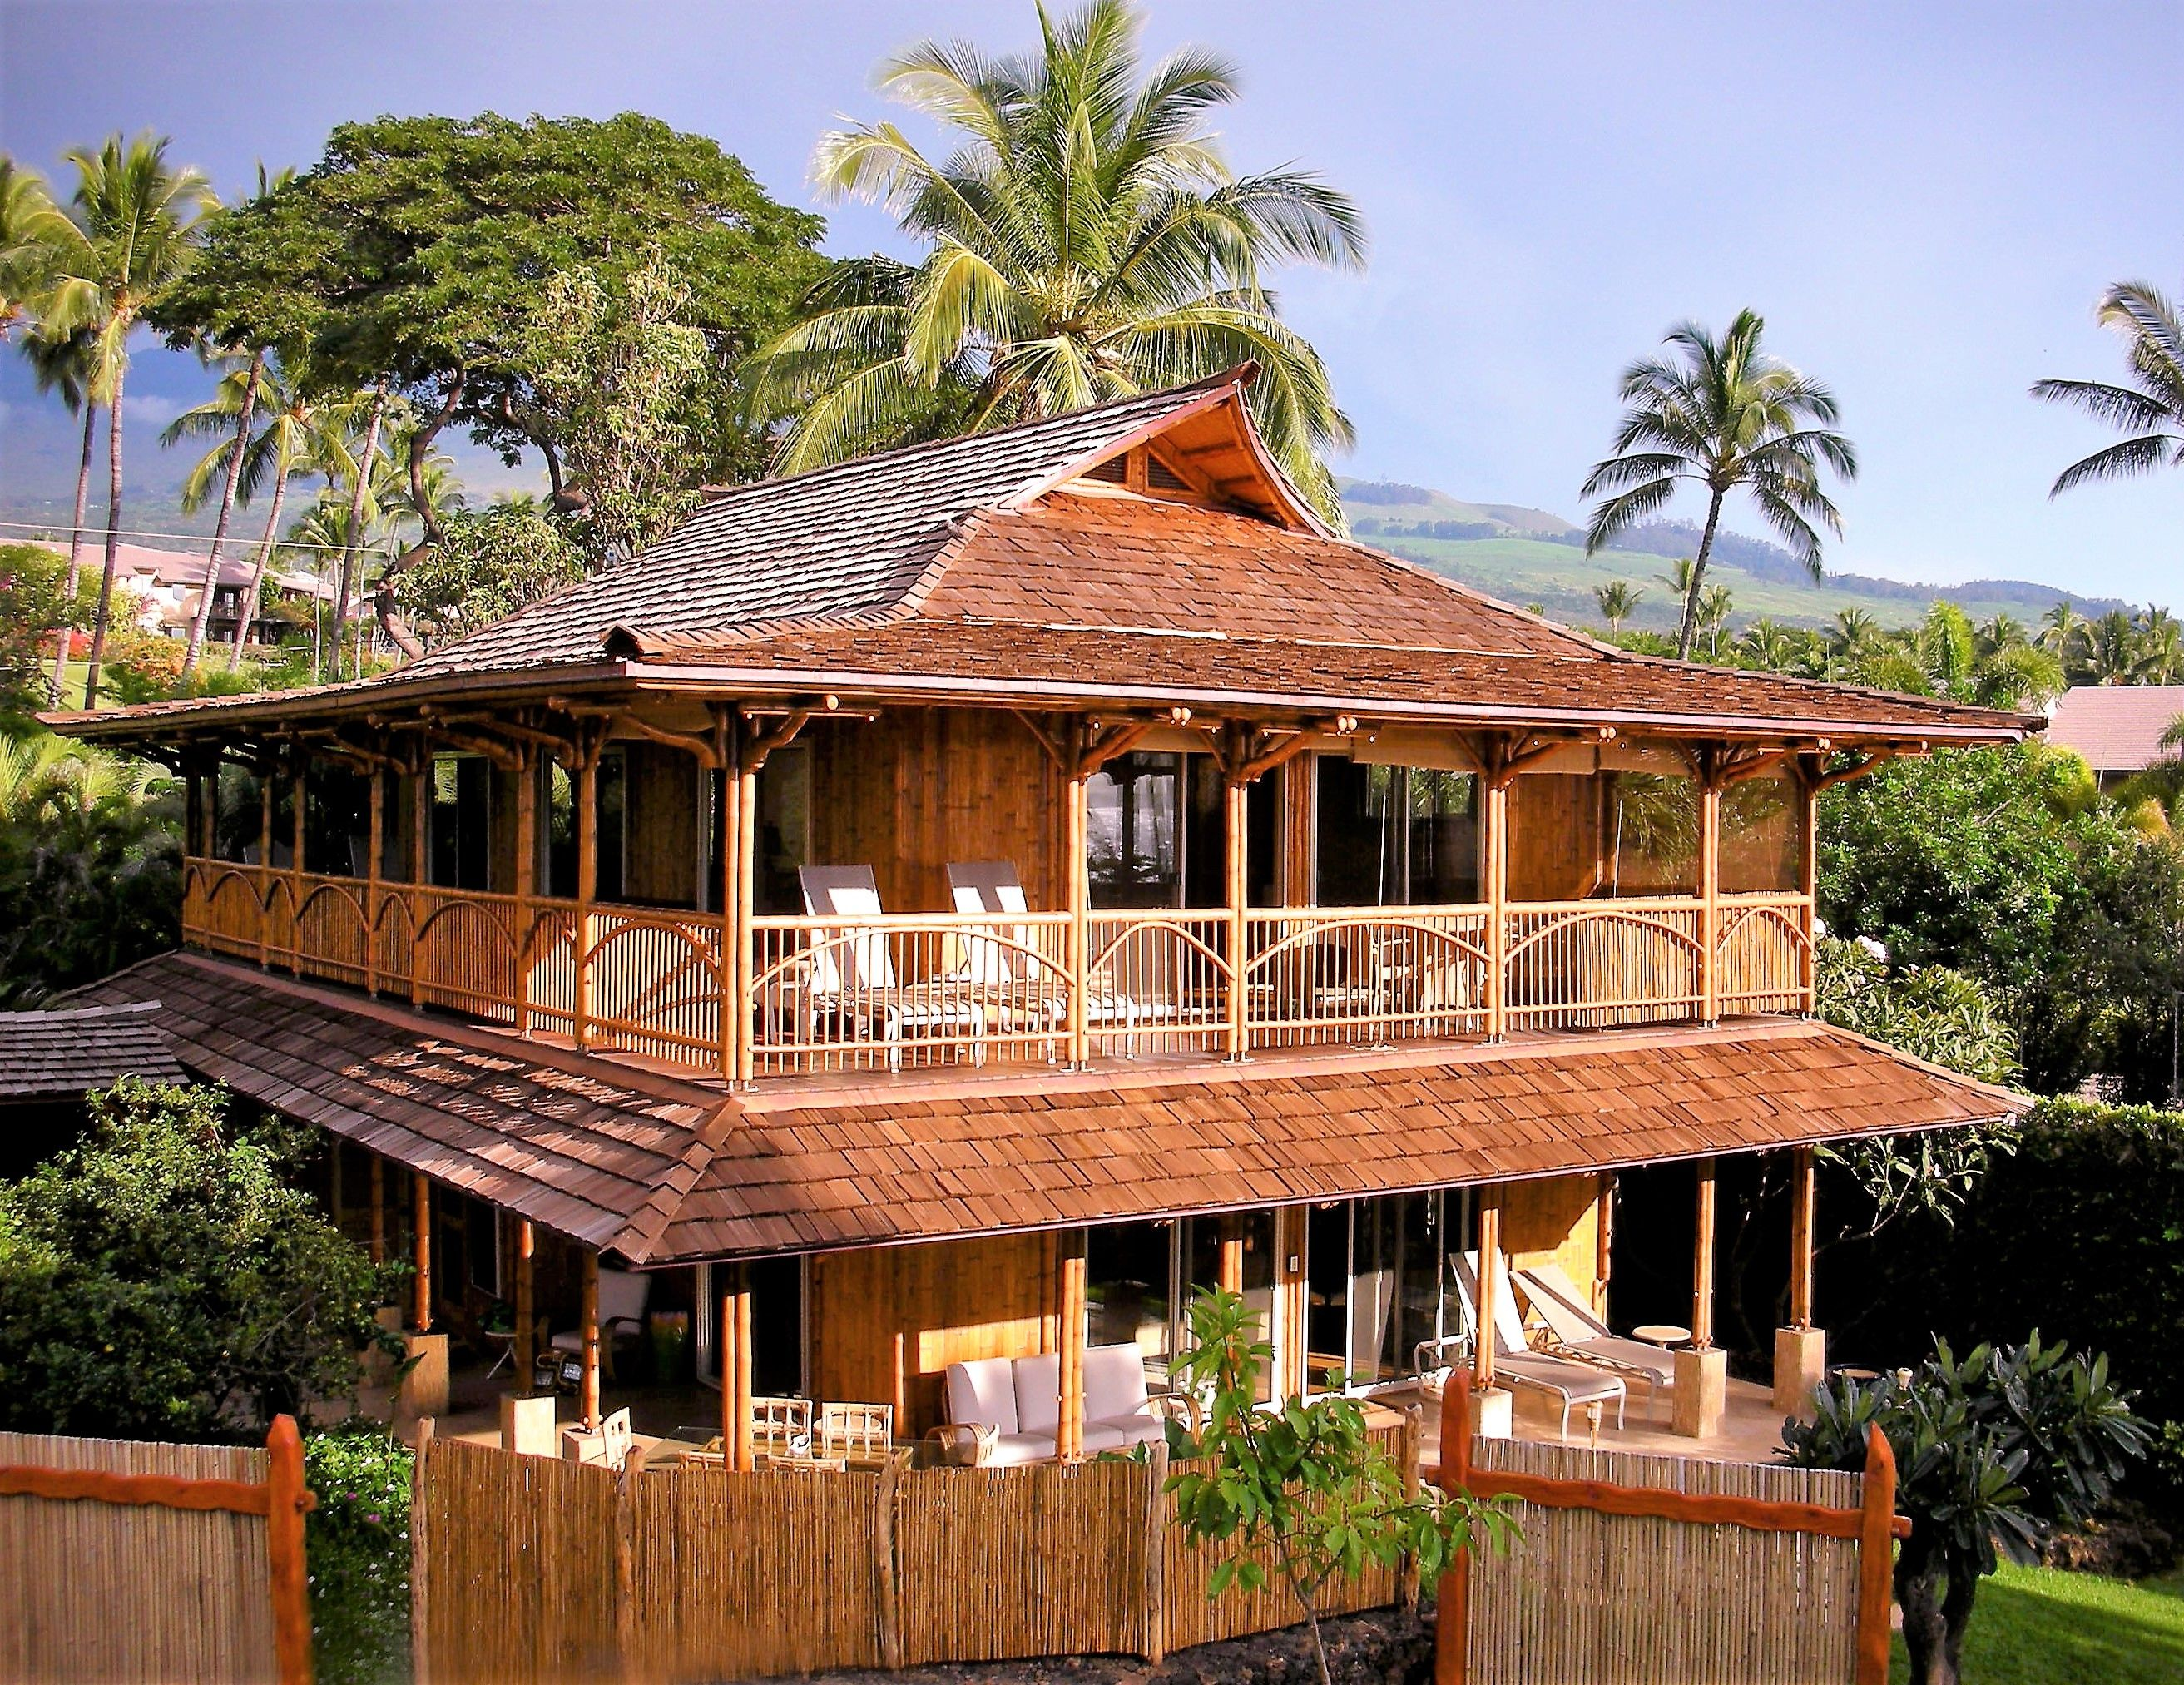 Bali two story bali two story bamboo house design